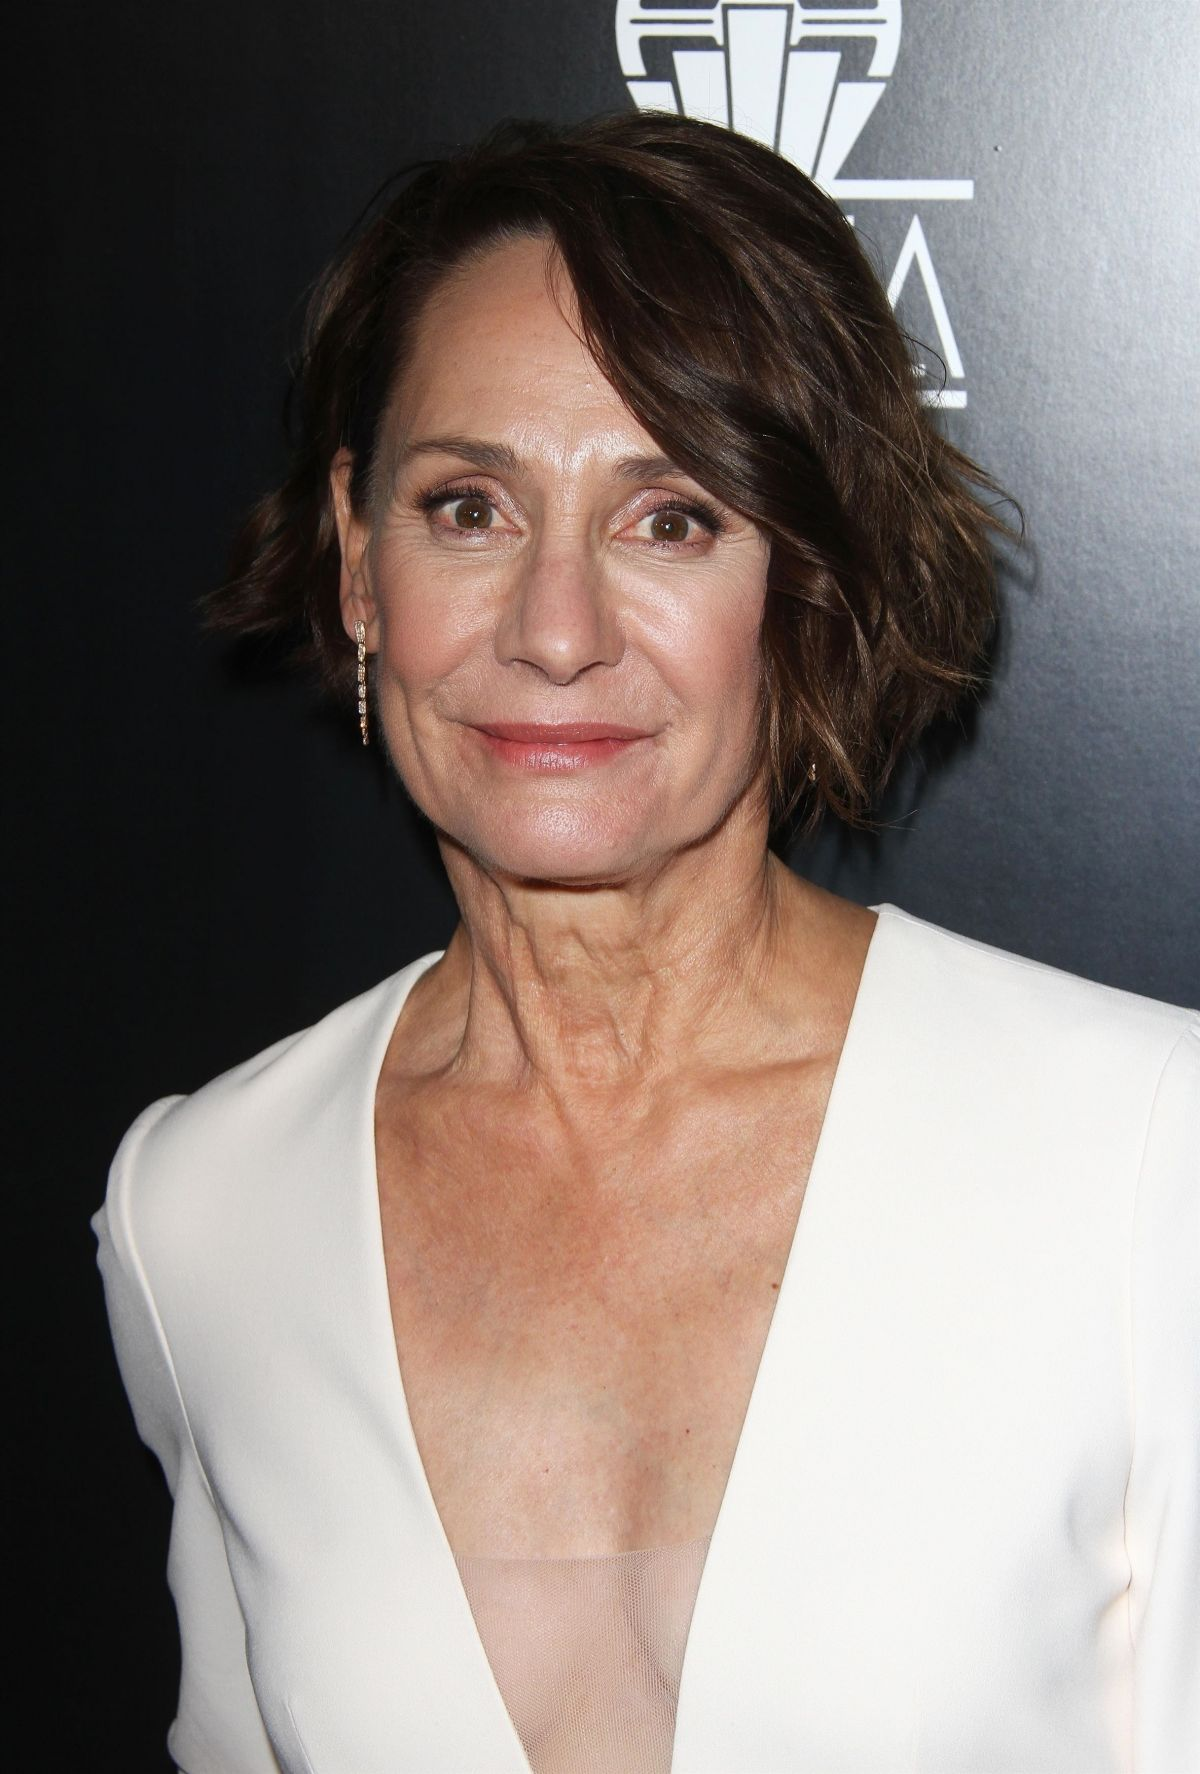 Laurie Metcalf Laurie Metcalf new pics